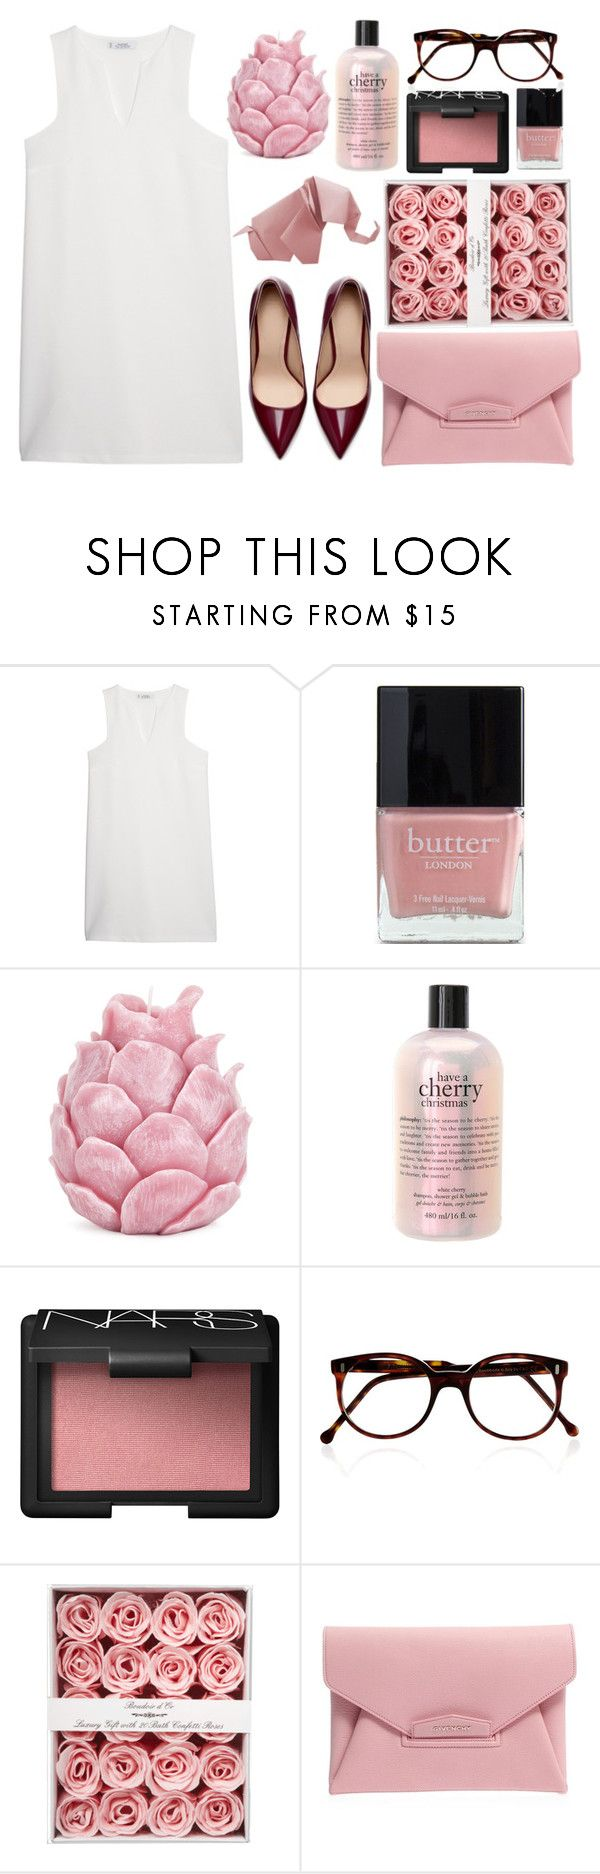 Zara home to open in toronto -  Elephant Pink Spirit By Farahhind Liked On Polyvore Featuring Mango Butter London Zara Homecutler